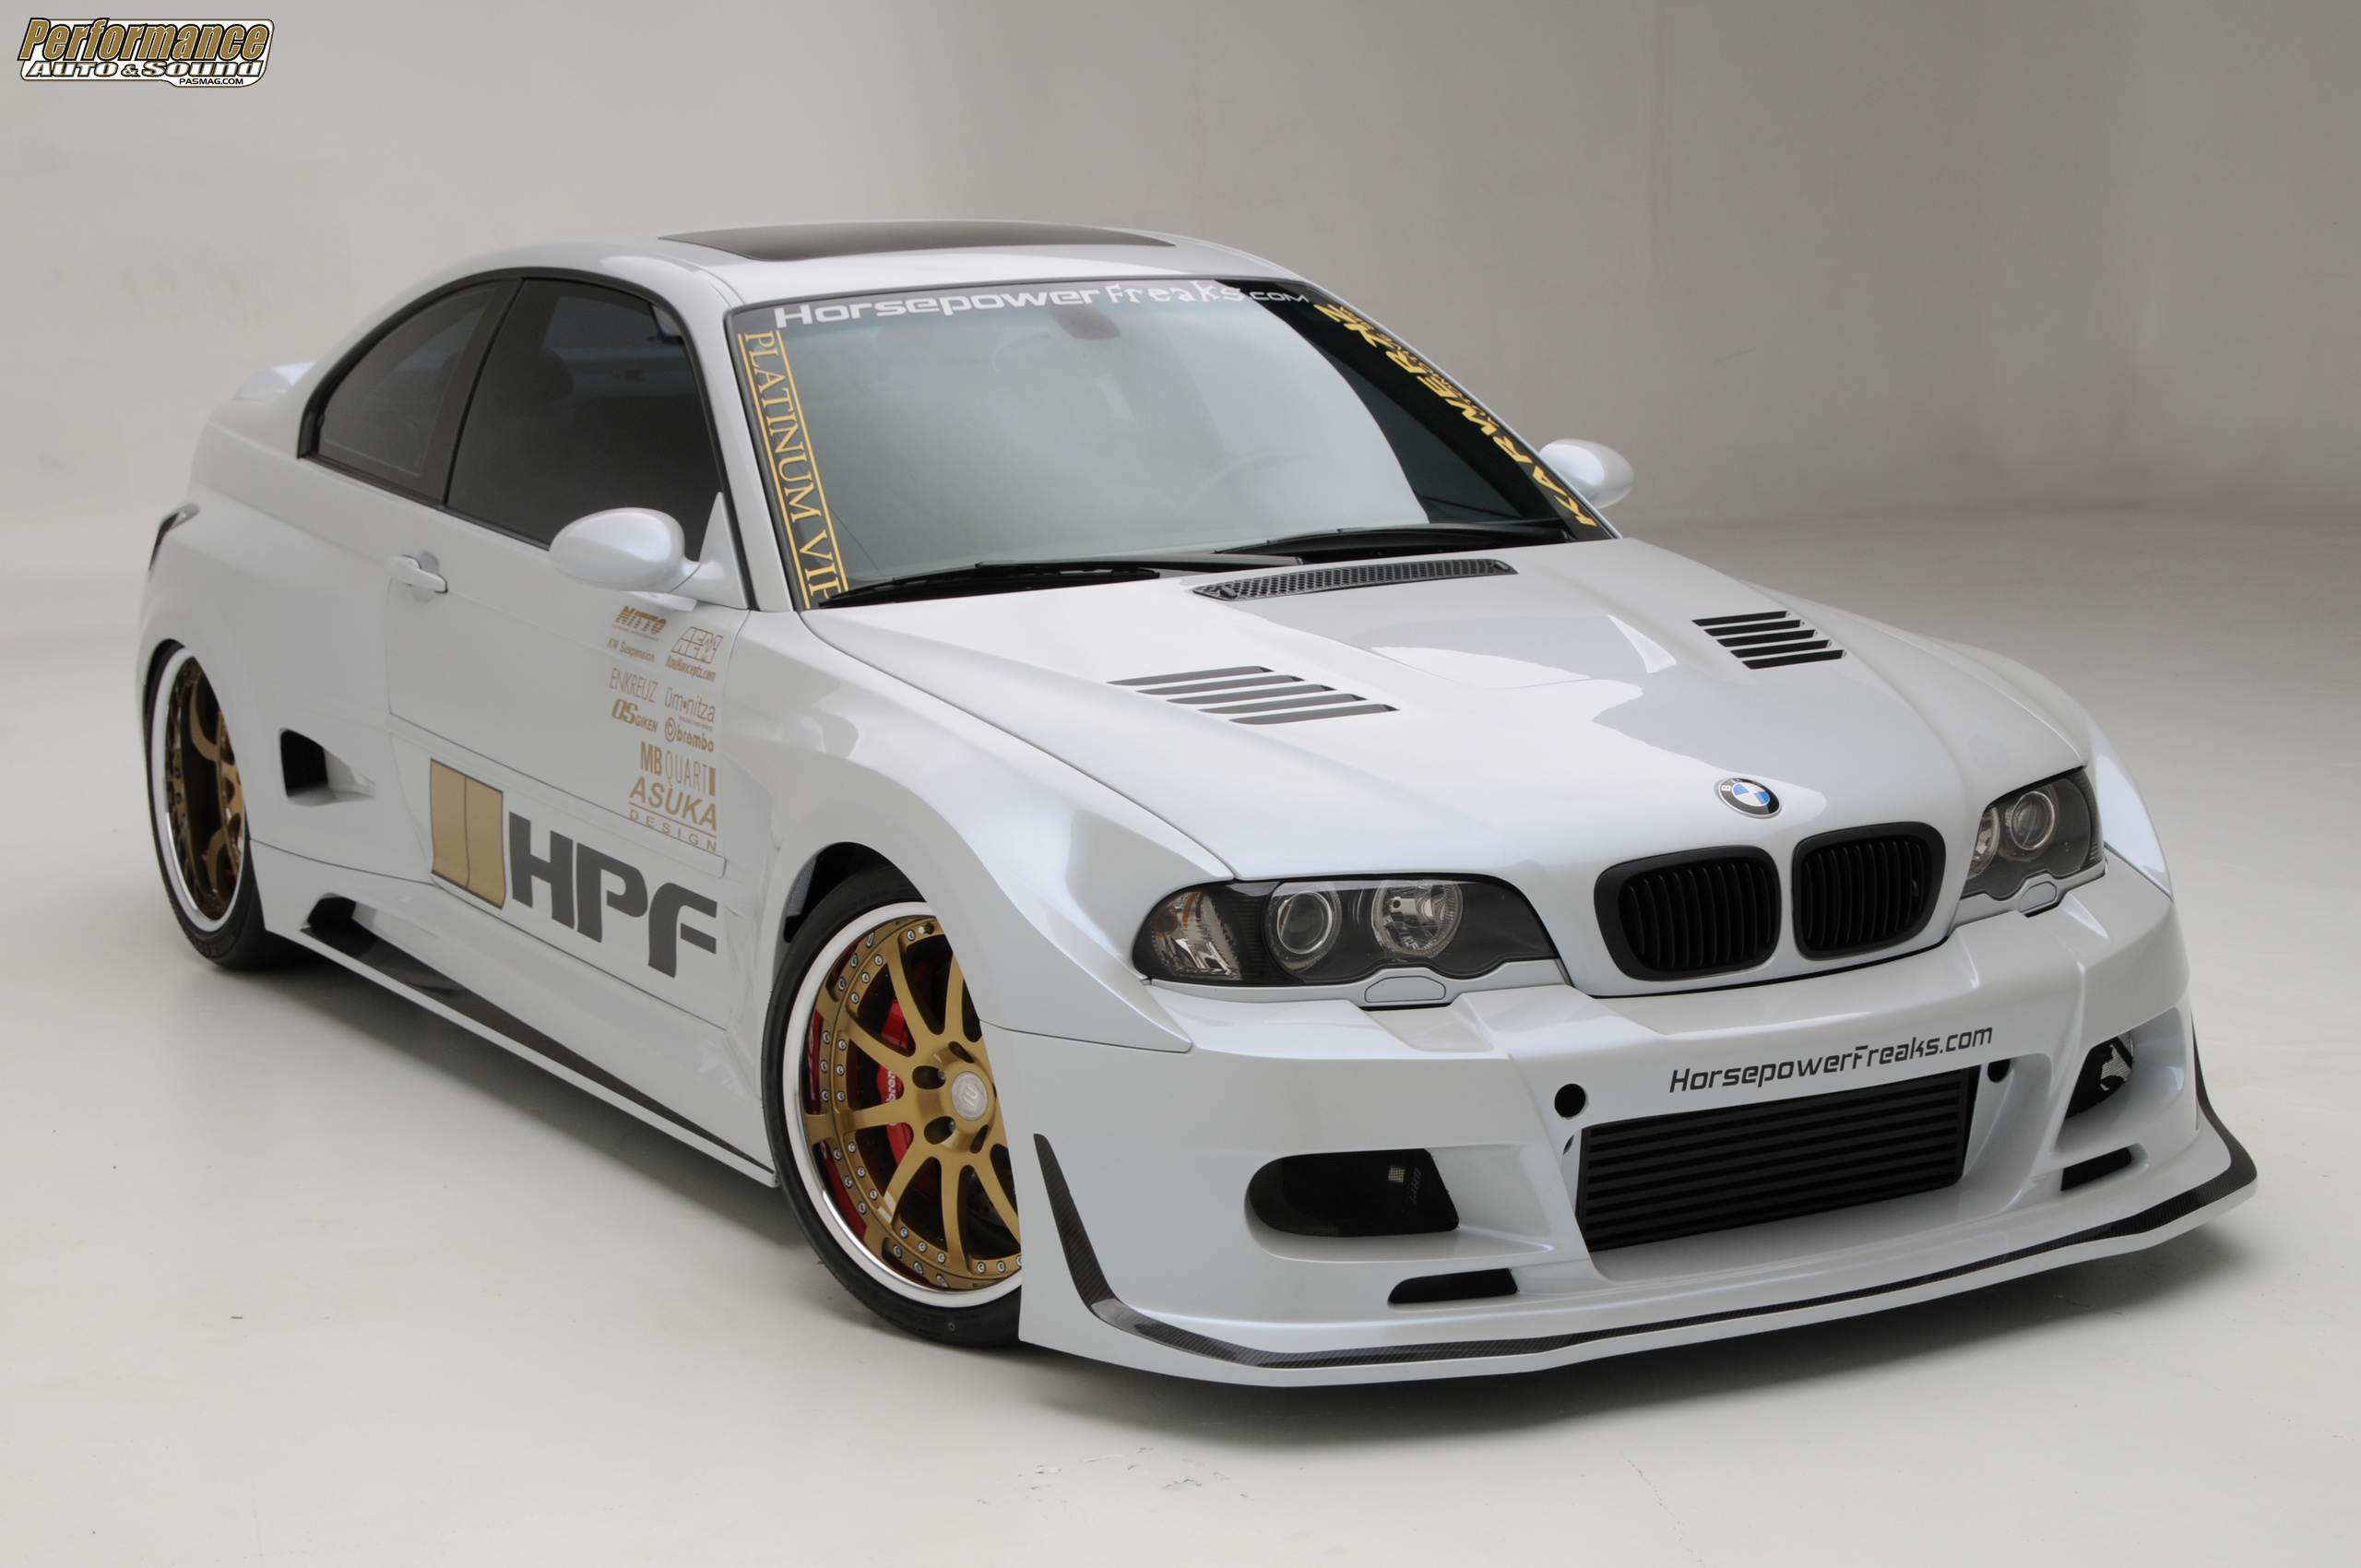 BMW E46 M3 TURBO BY HPF Desktop Backgrounds